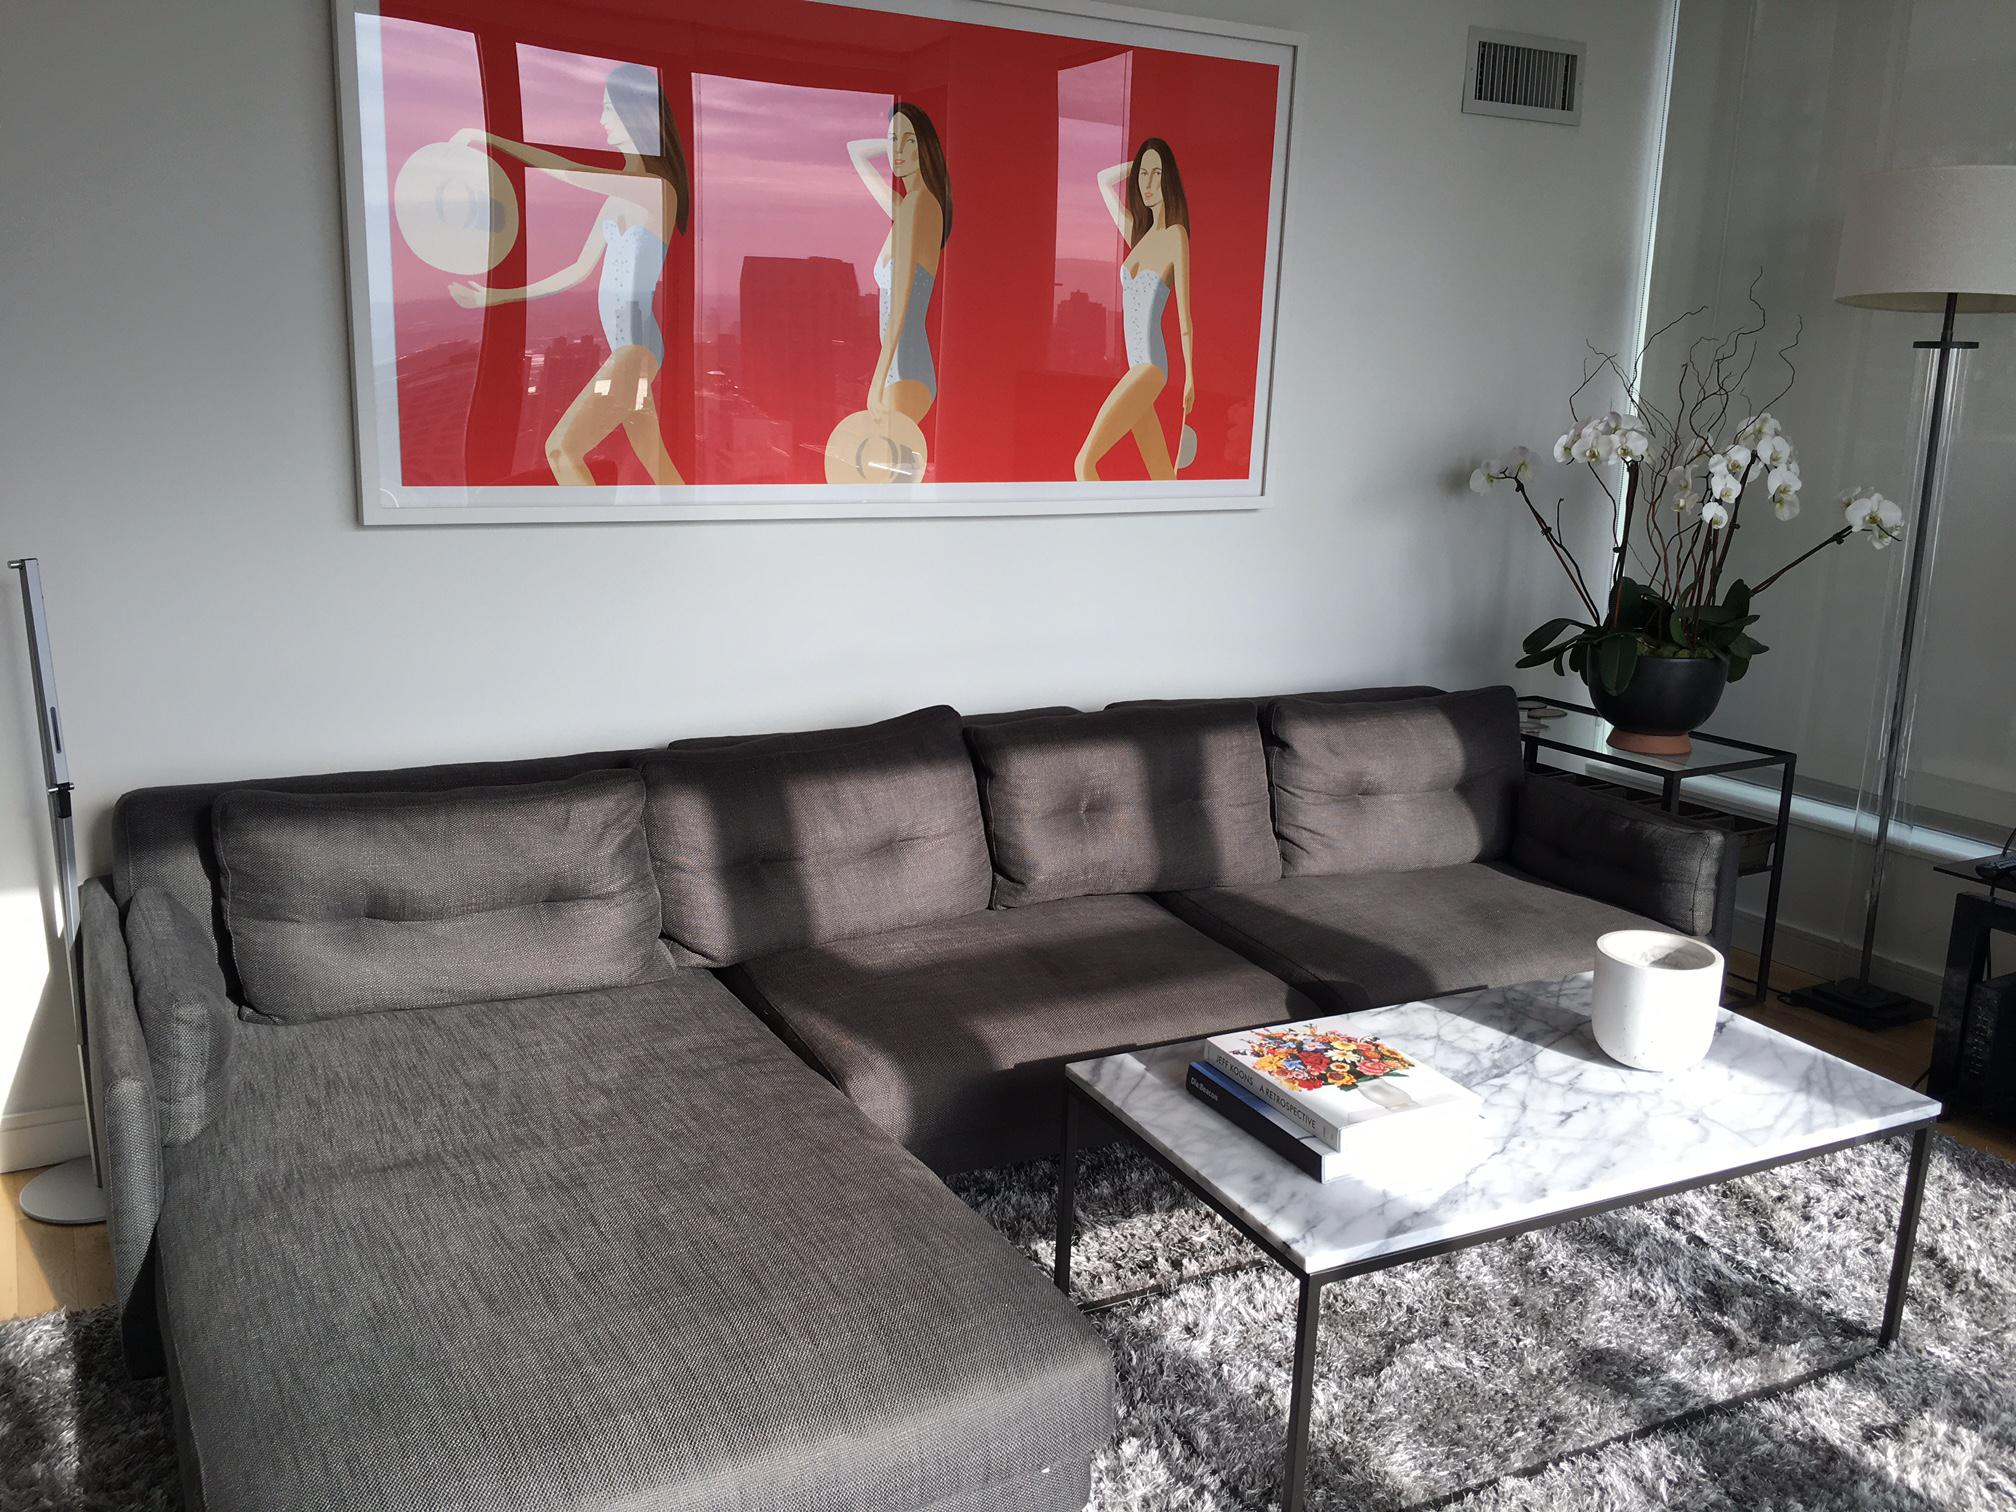 west elm marble coffee table image 5 of 5